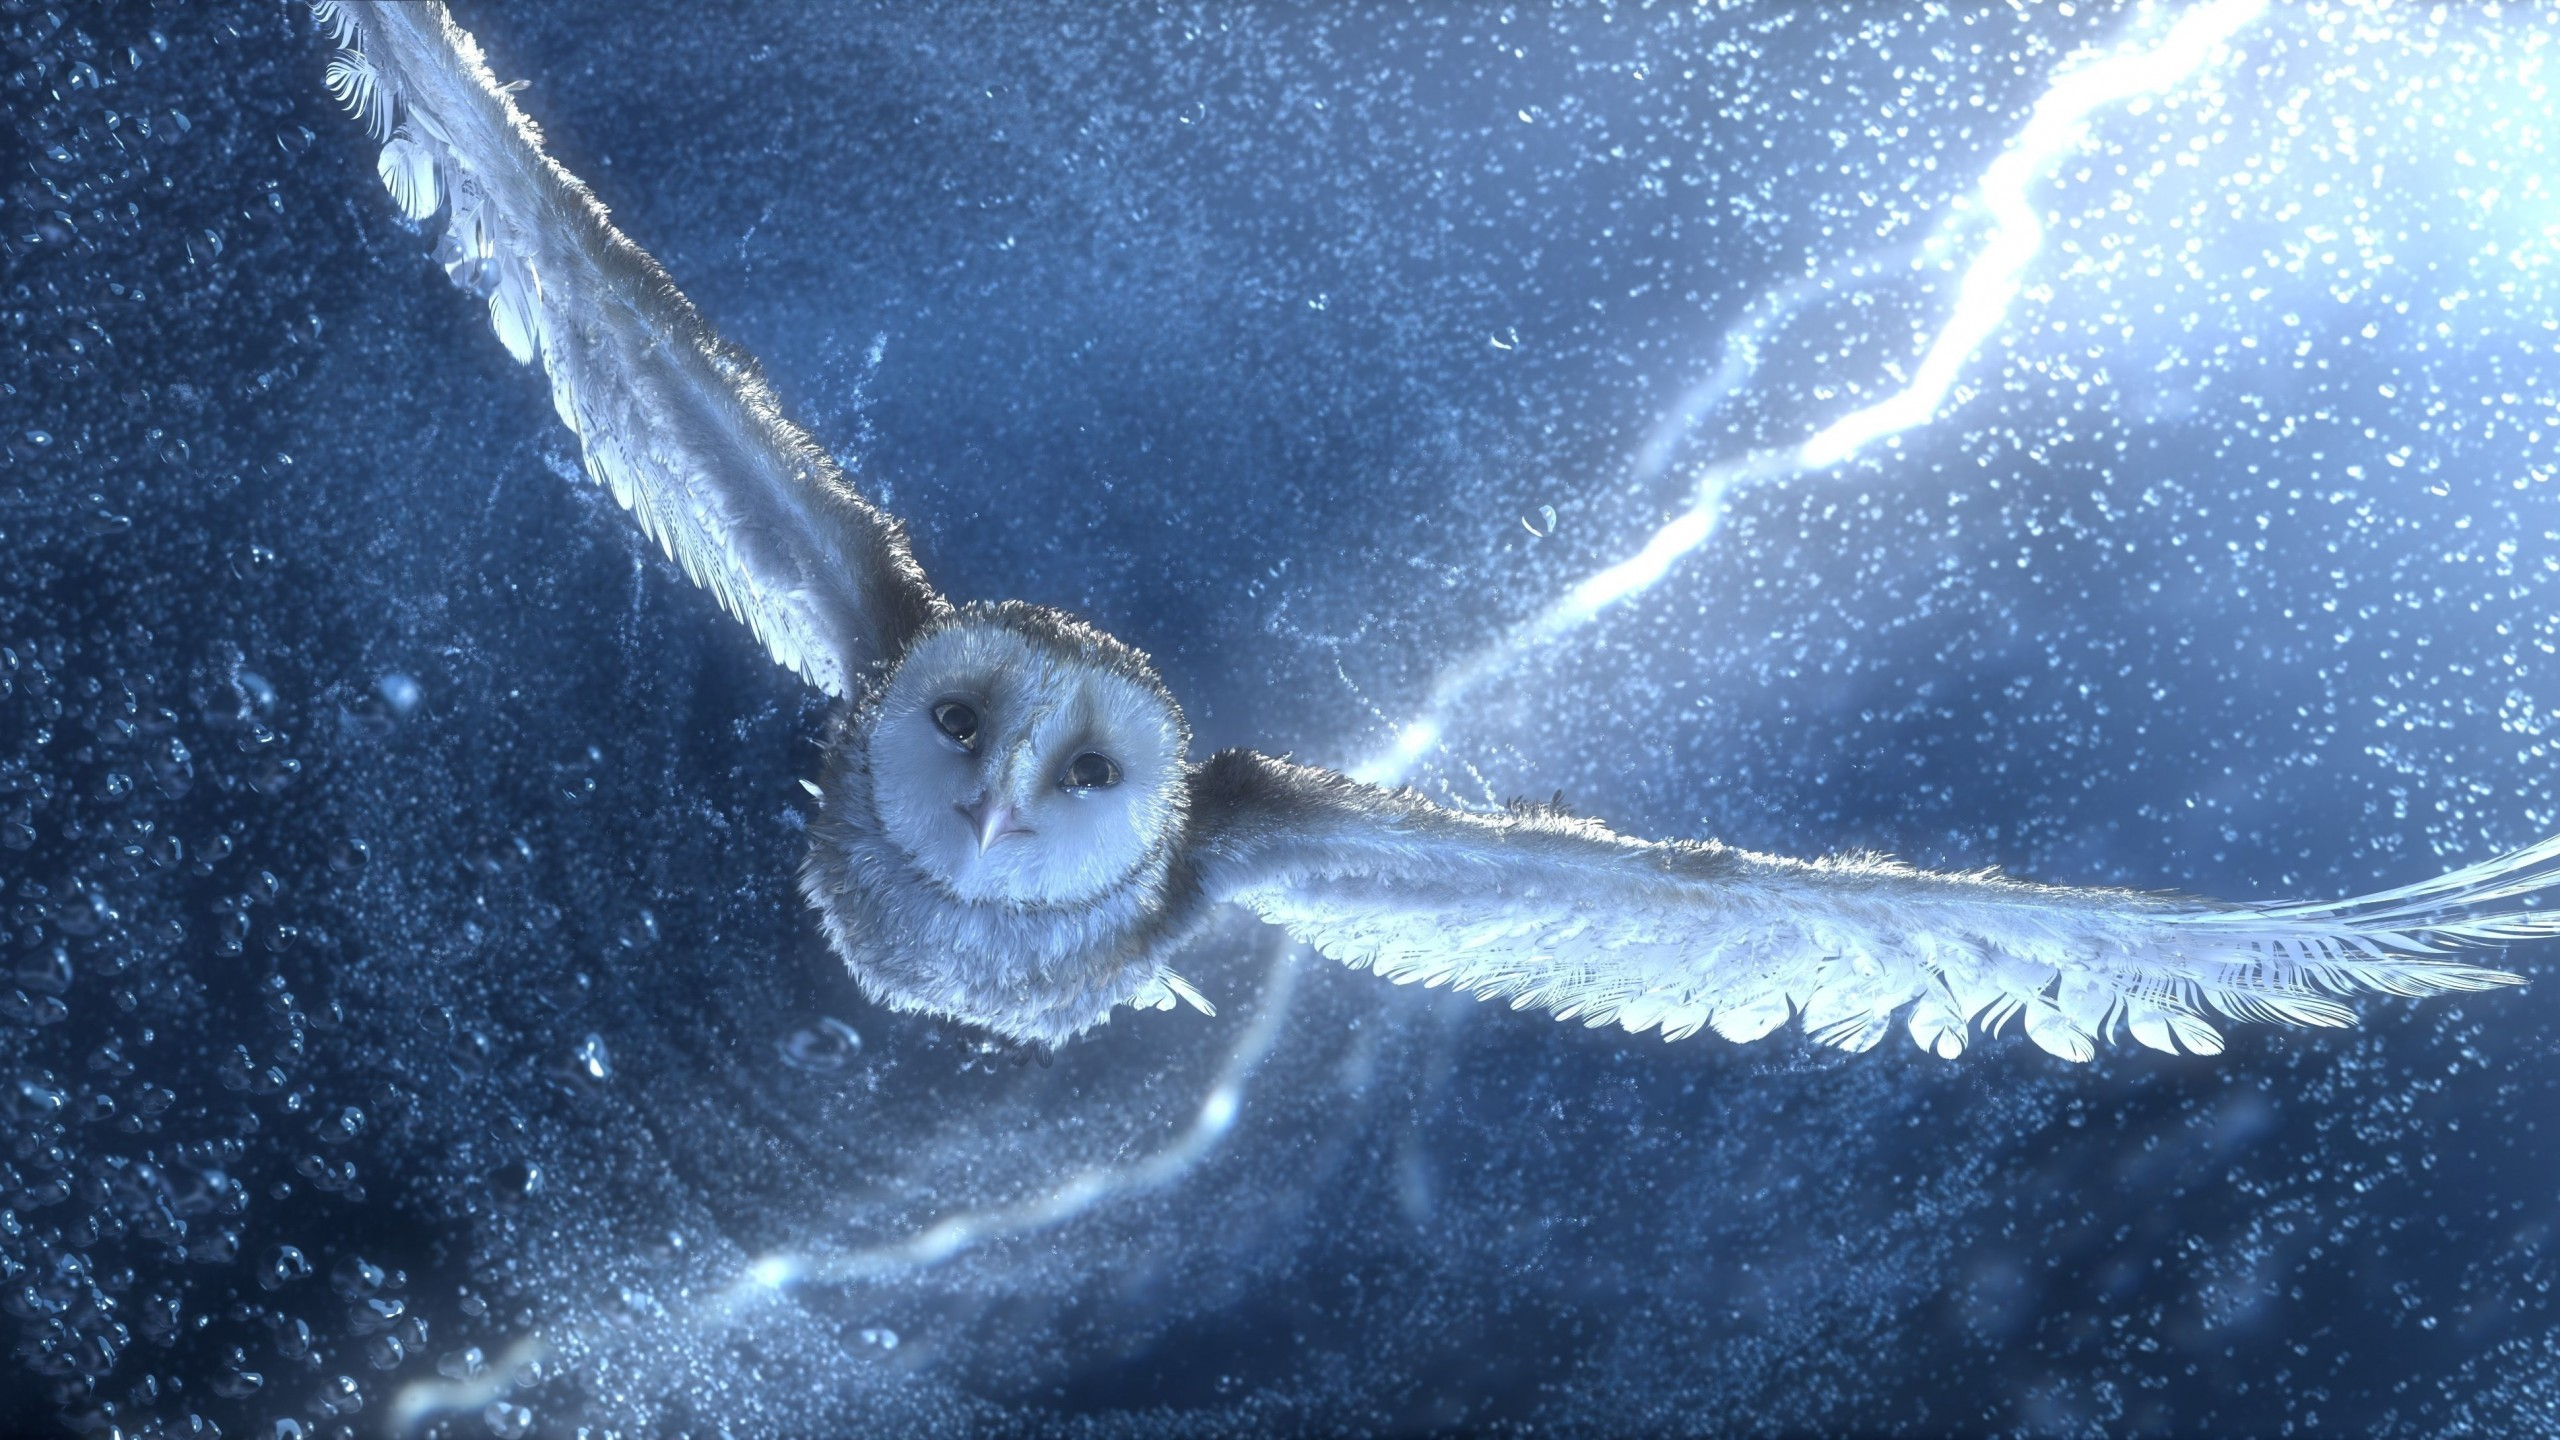 Funny Quotes And Wallpapers Wallpaper Owl Flying Snow Storm Lightning Blue Bird